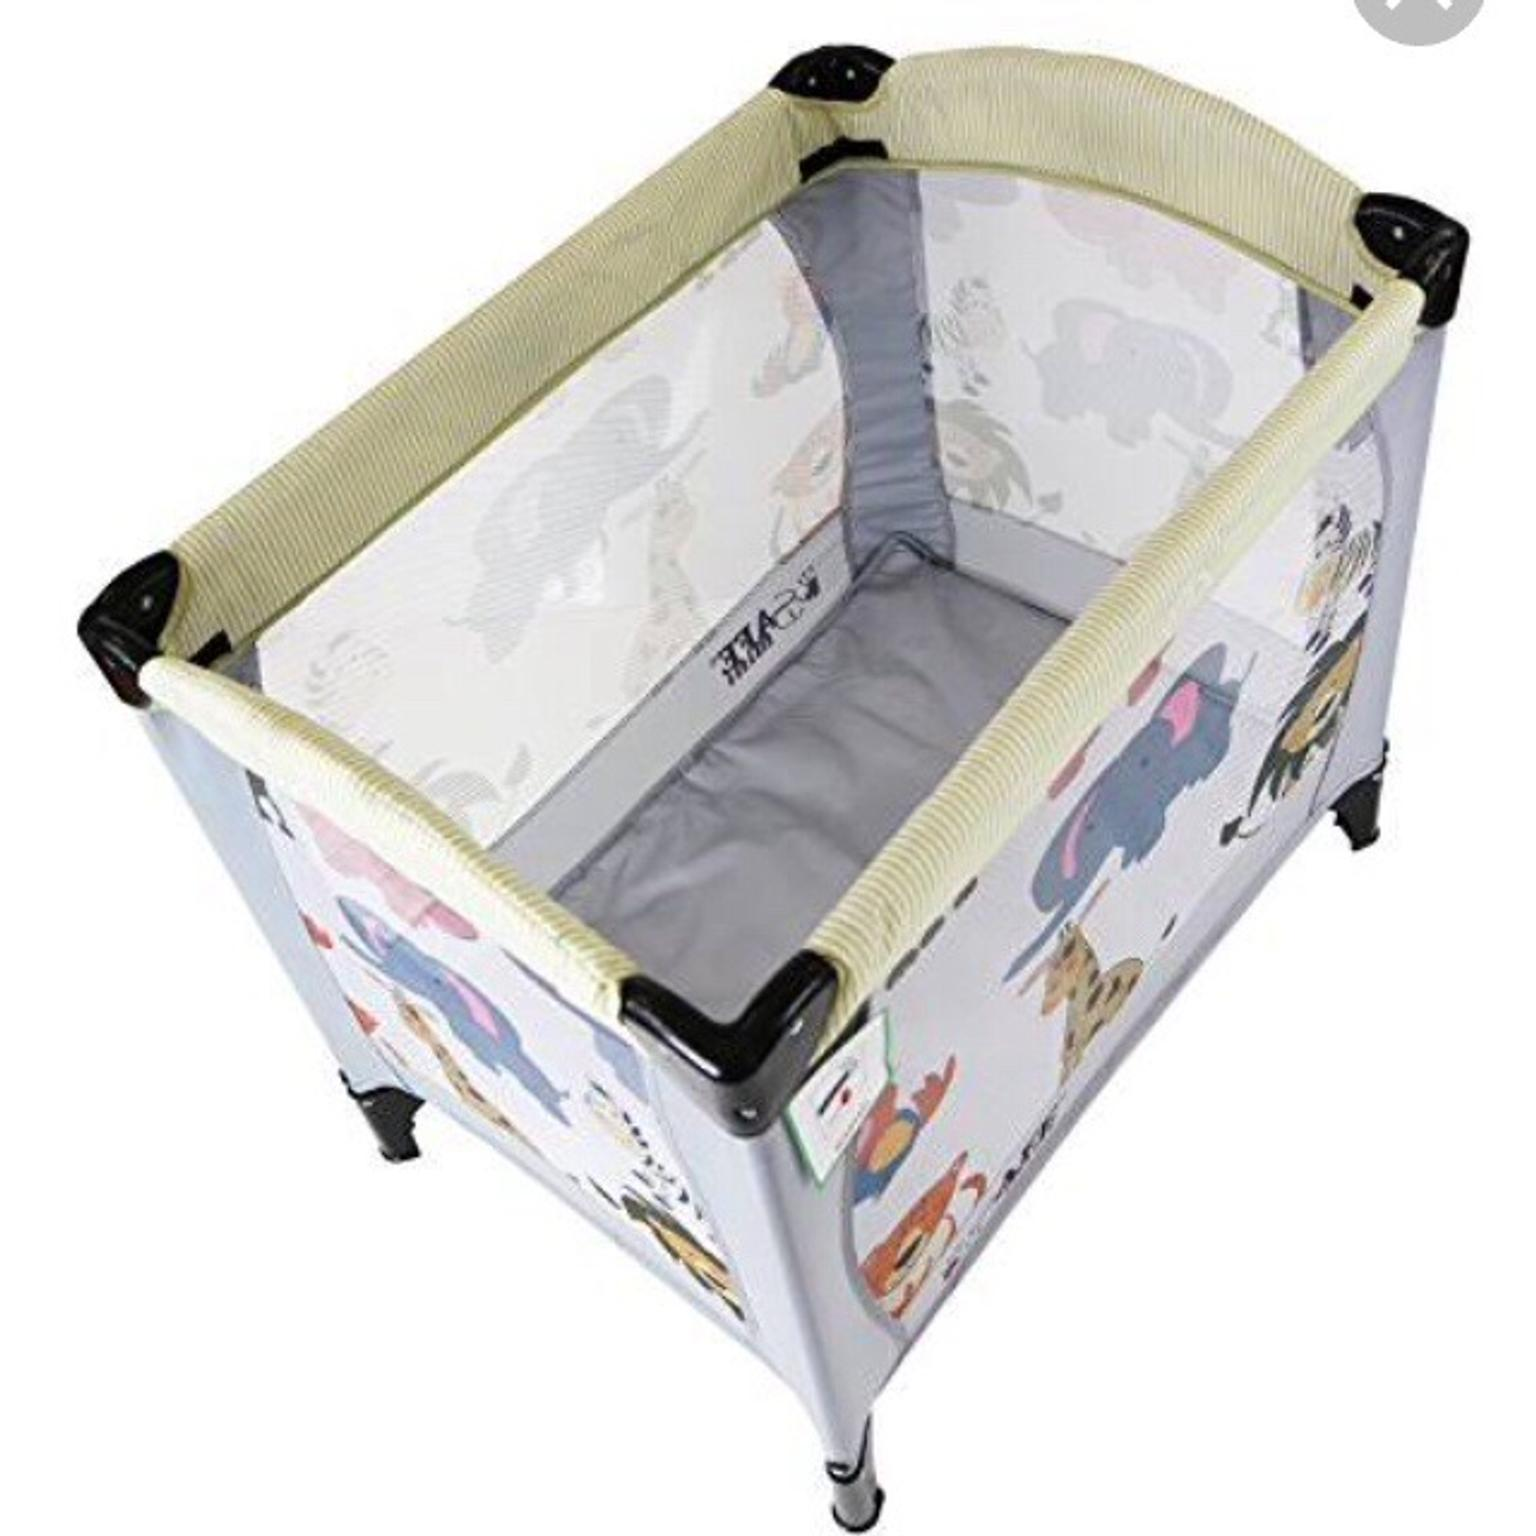 Baby Cots X2 Isafe Mini Travel Cot In B31 Birmingham For £20 00 For